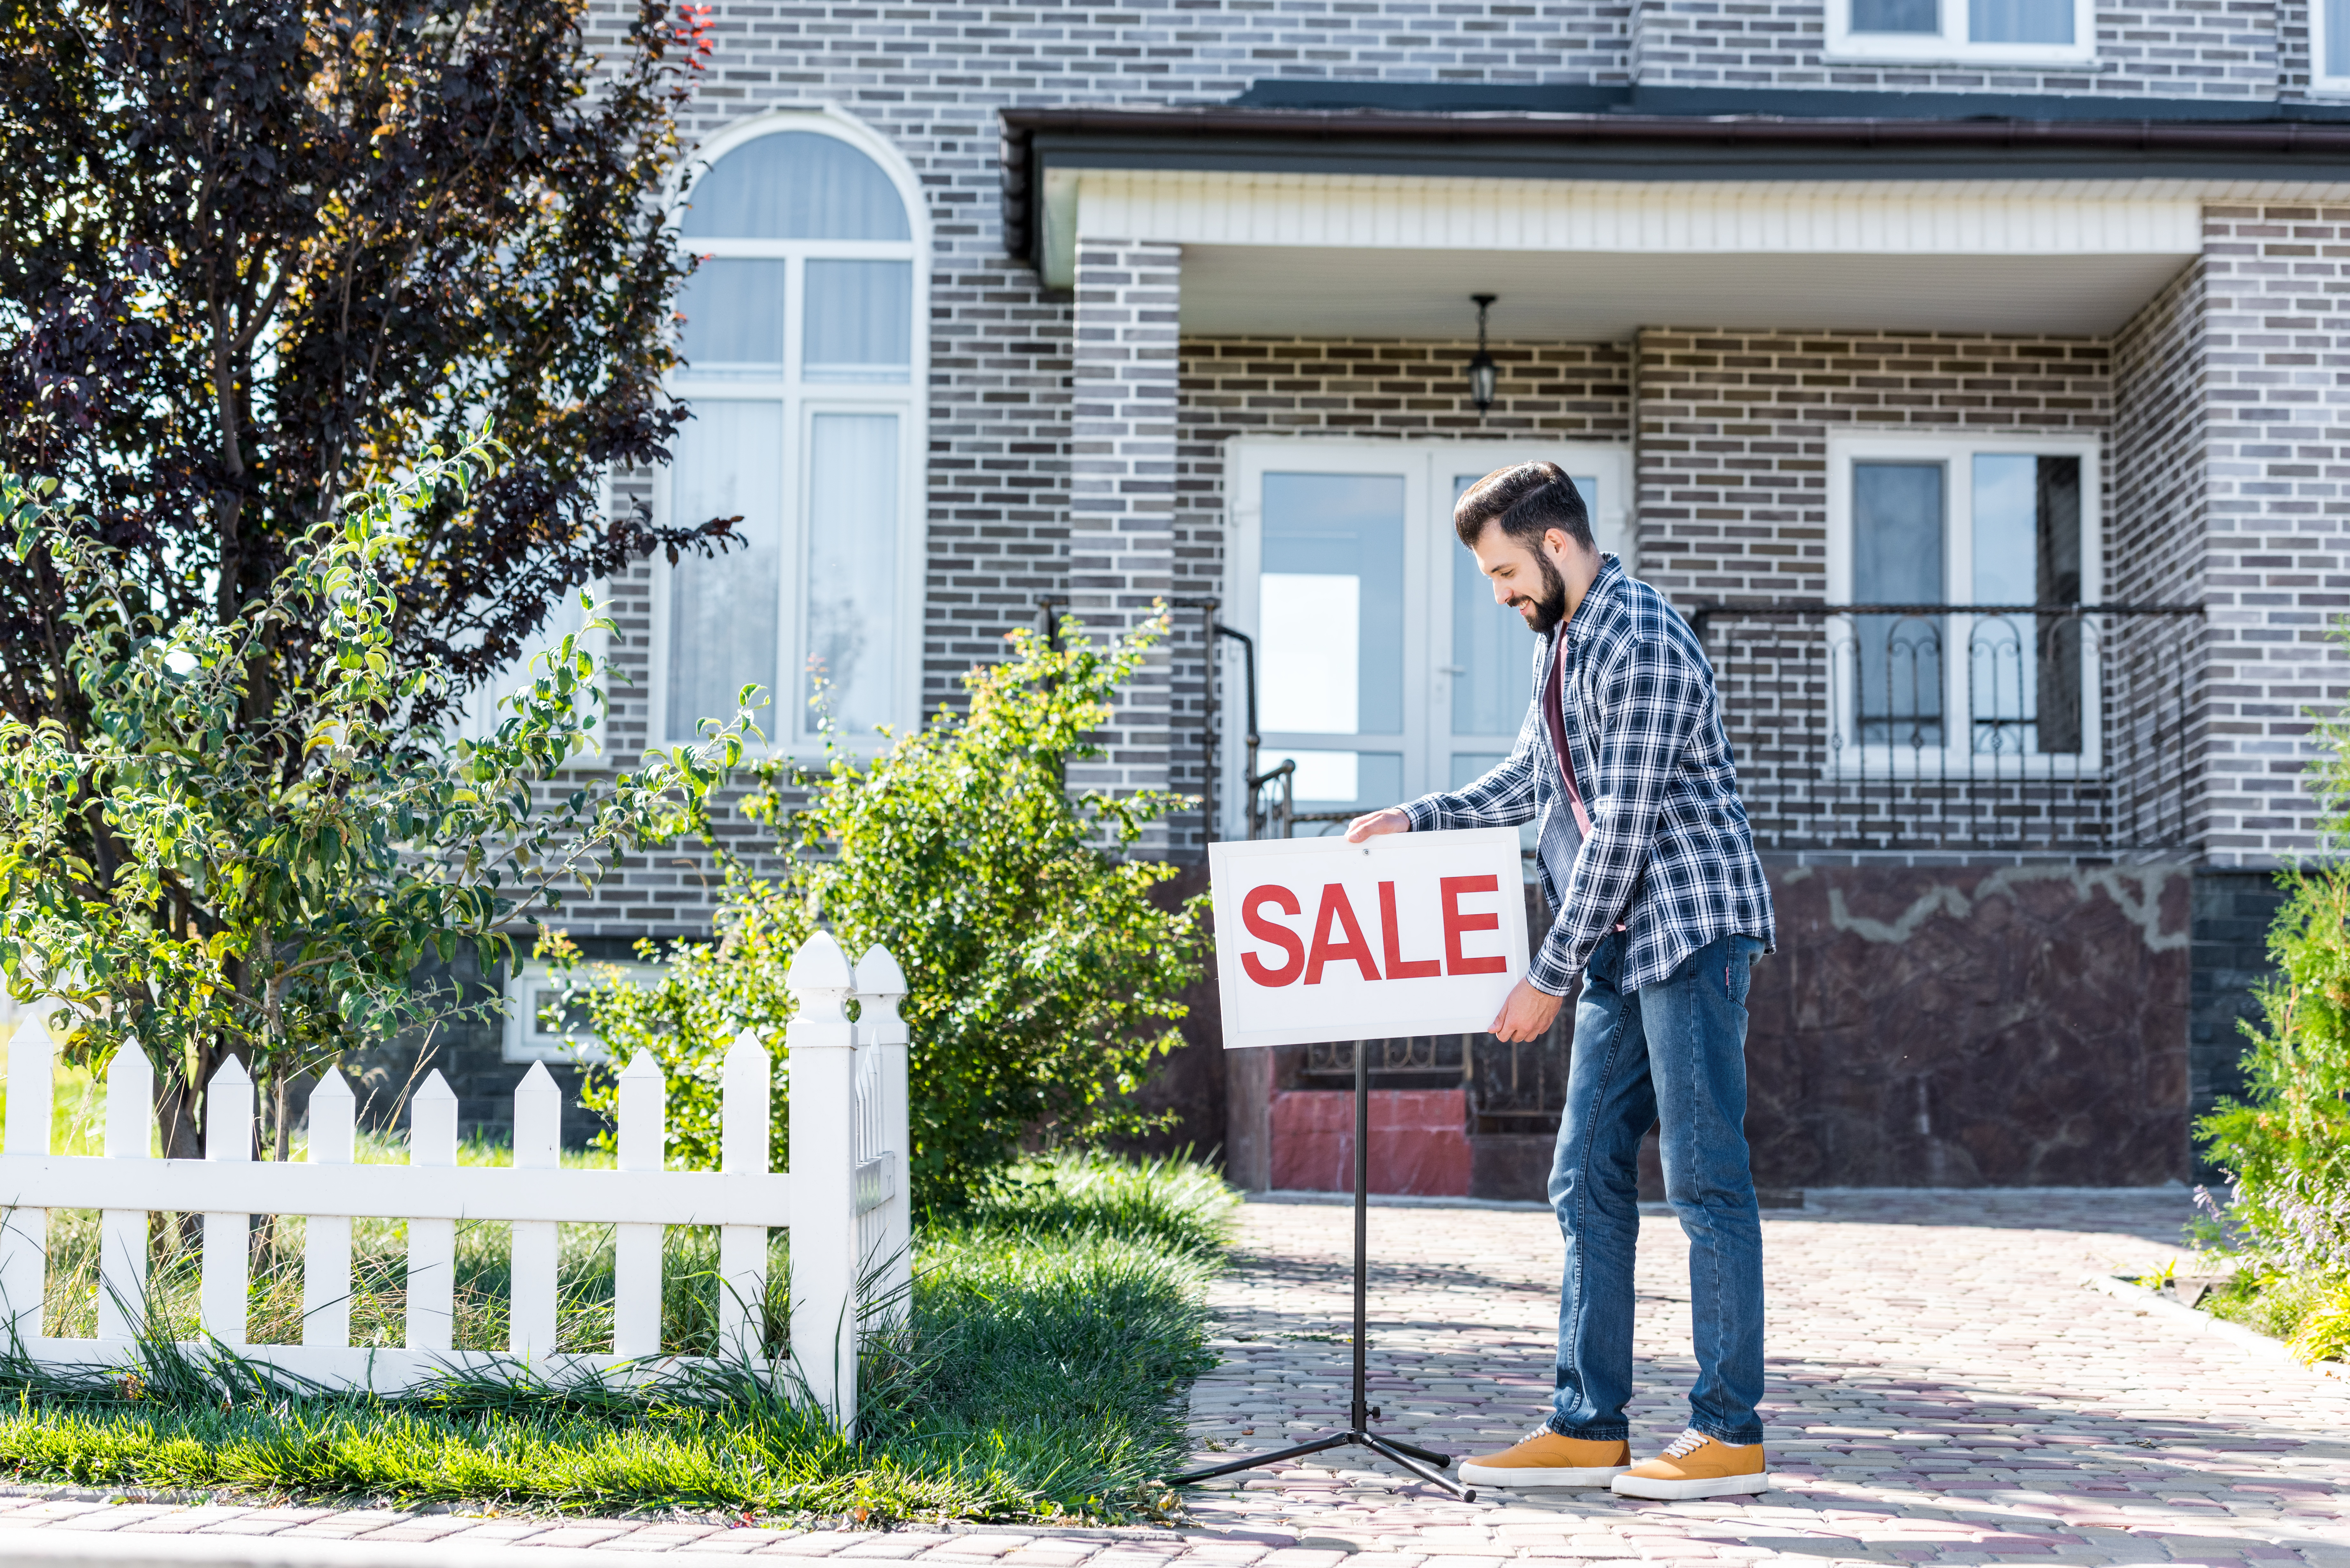 A home seller placing a SALE sign on their property